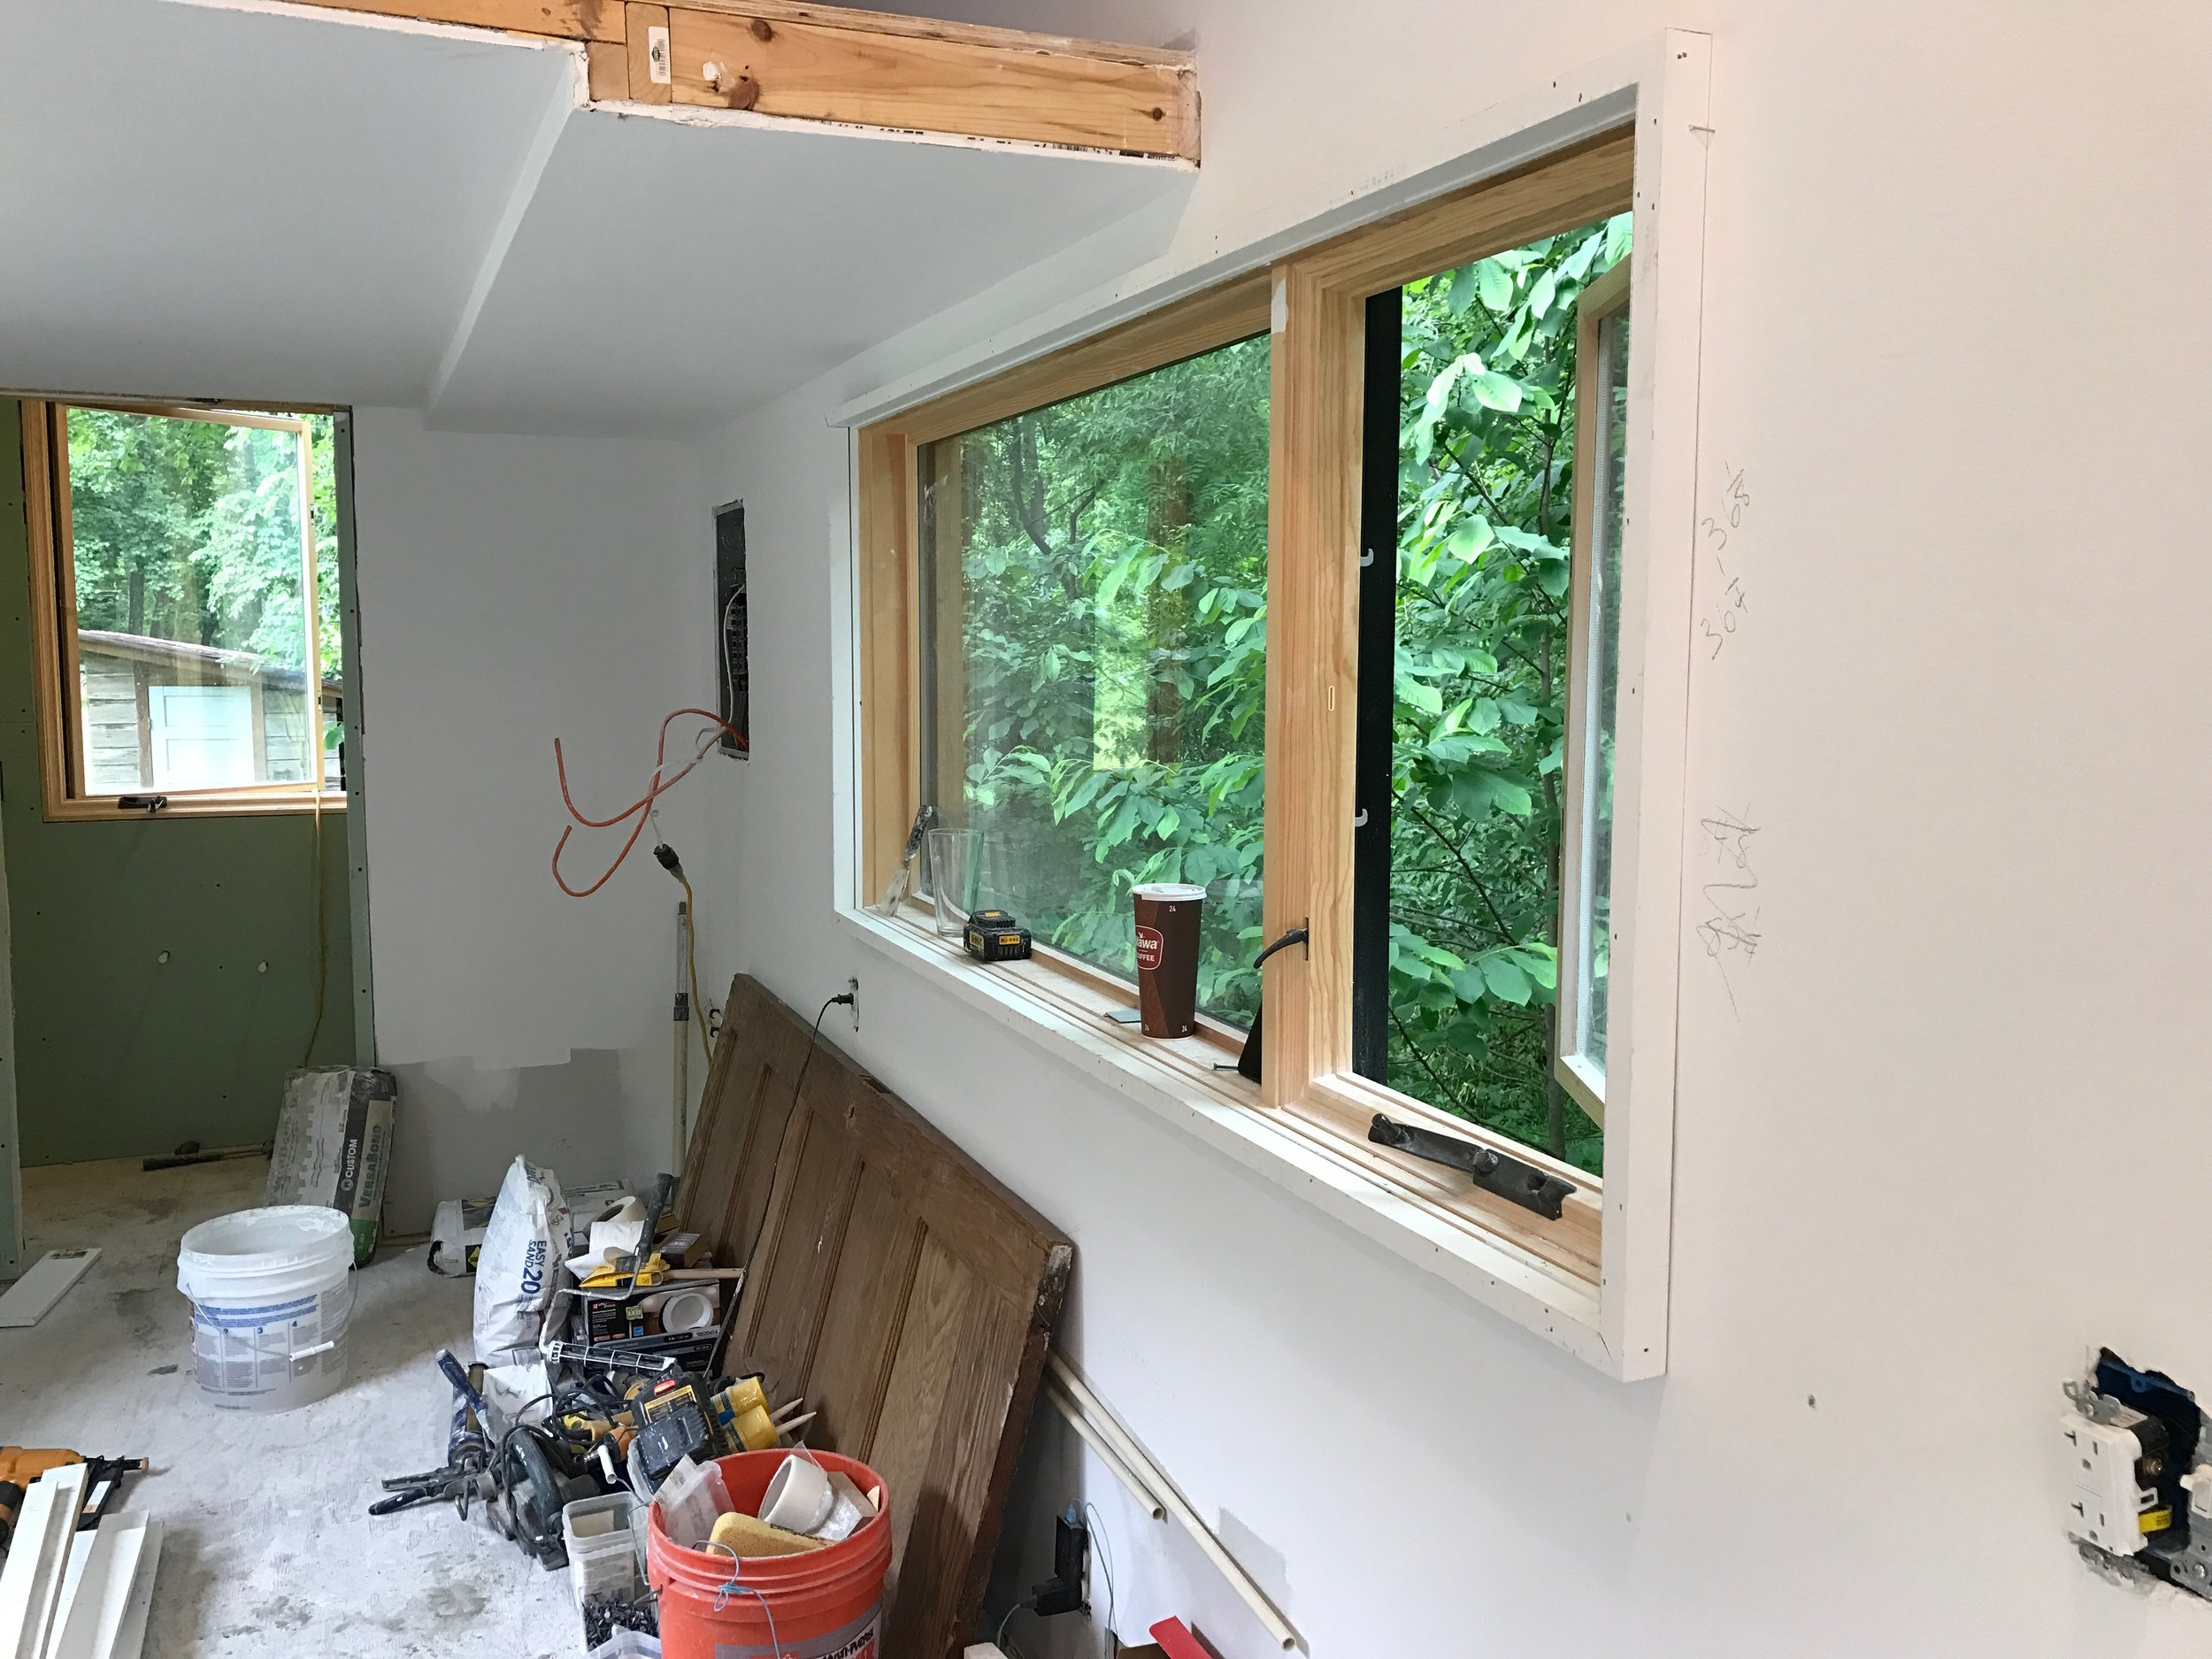 drywall!  Oh the purity of a white wall!